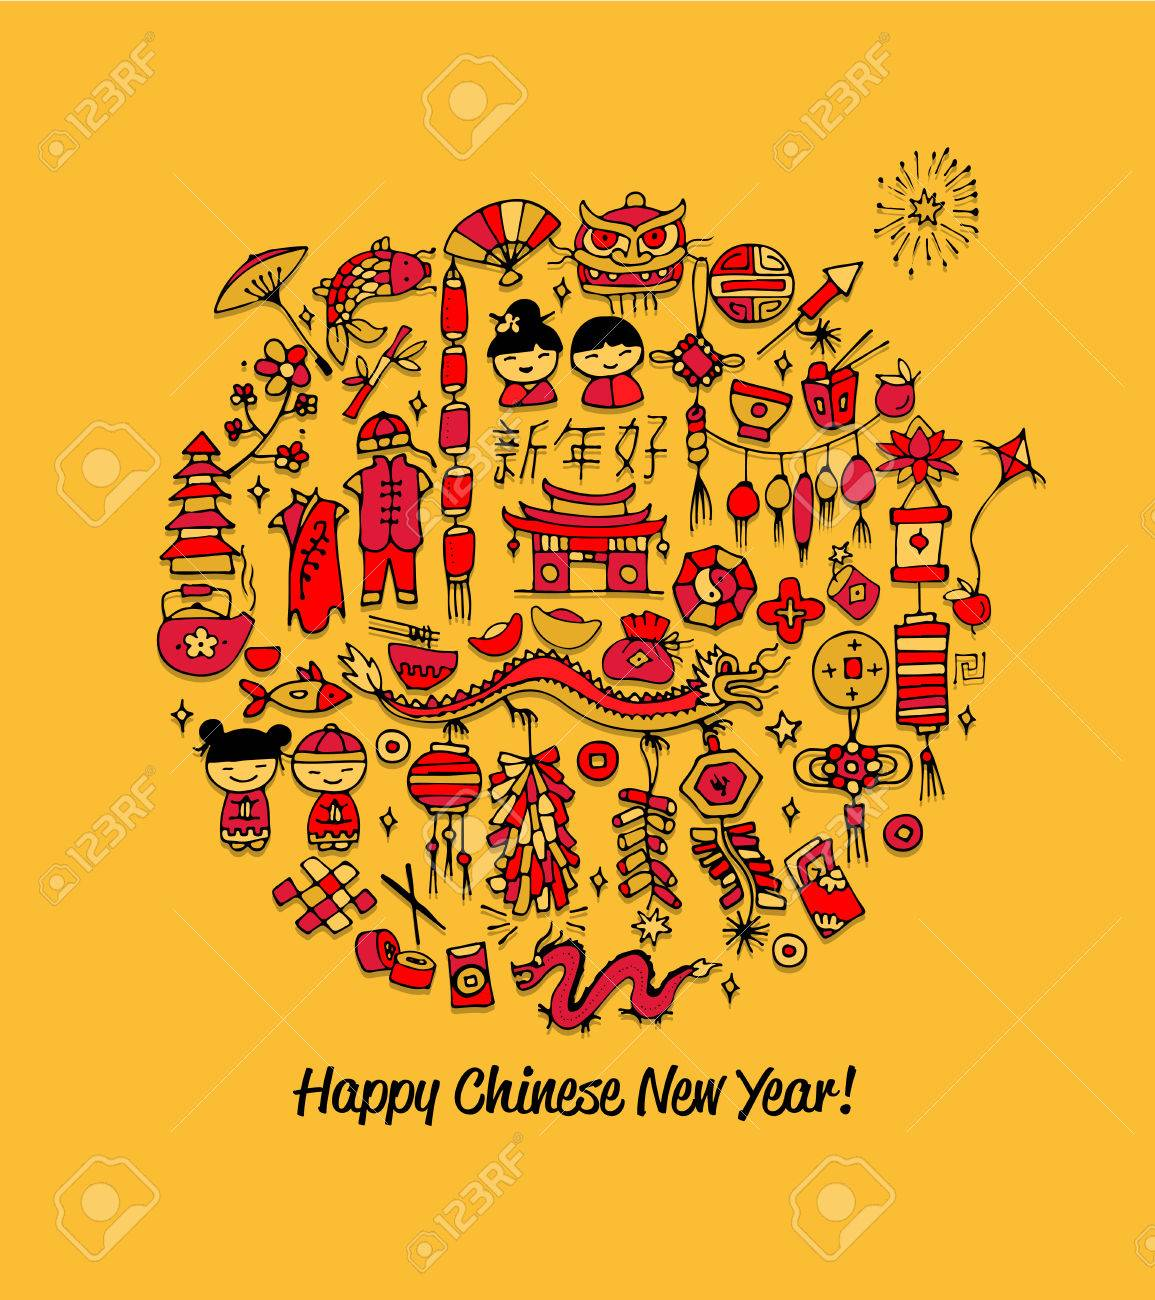 Chinese New Year Card Sketch For Your Design Royalty Free Cliparts